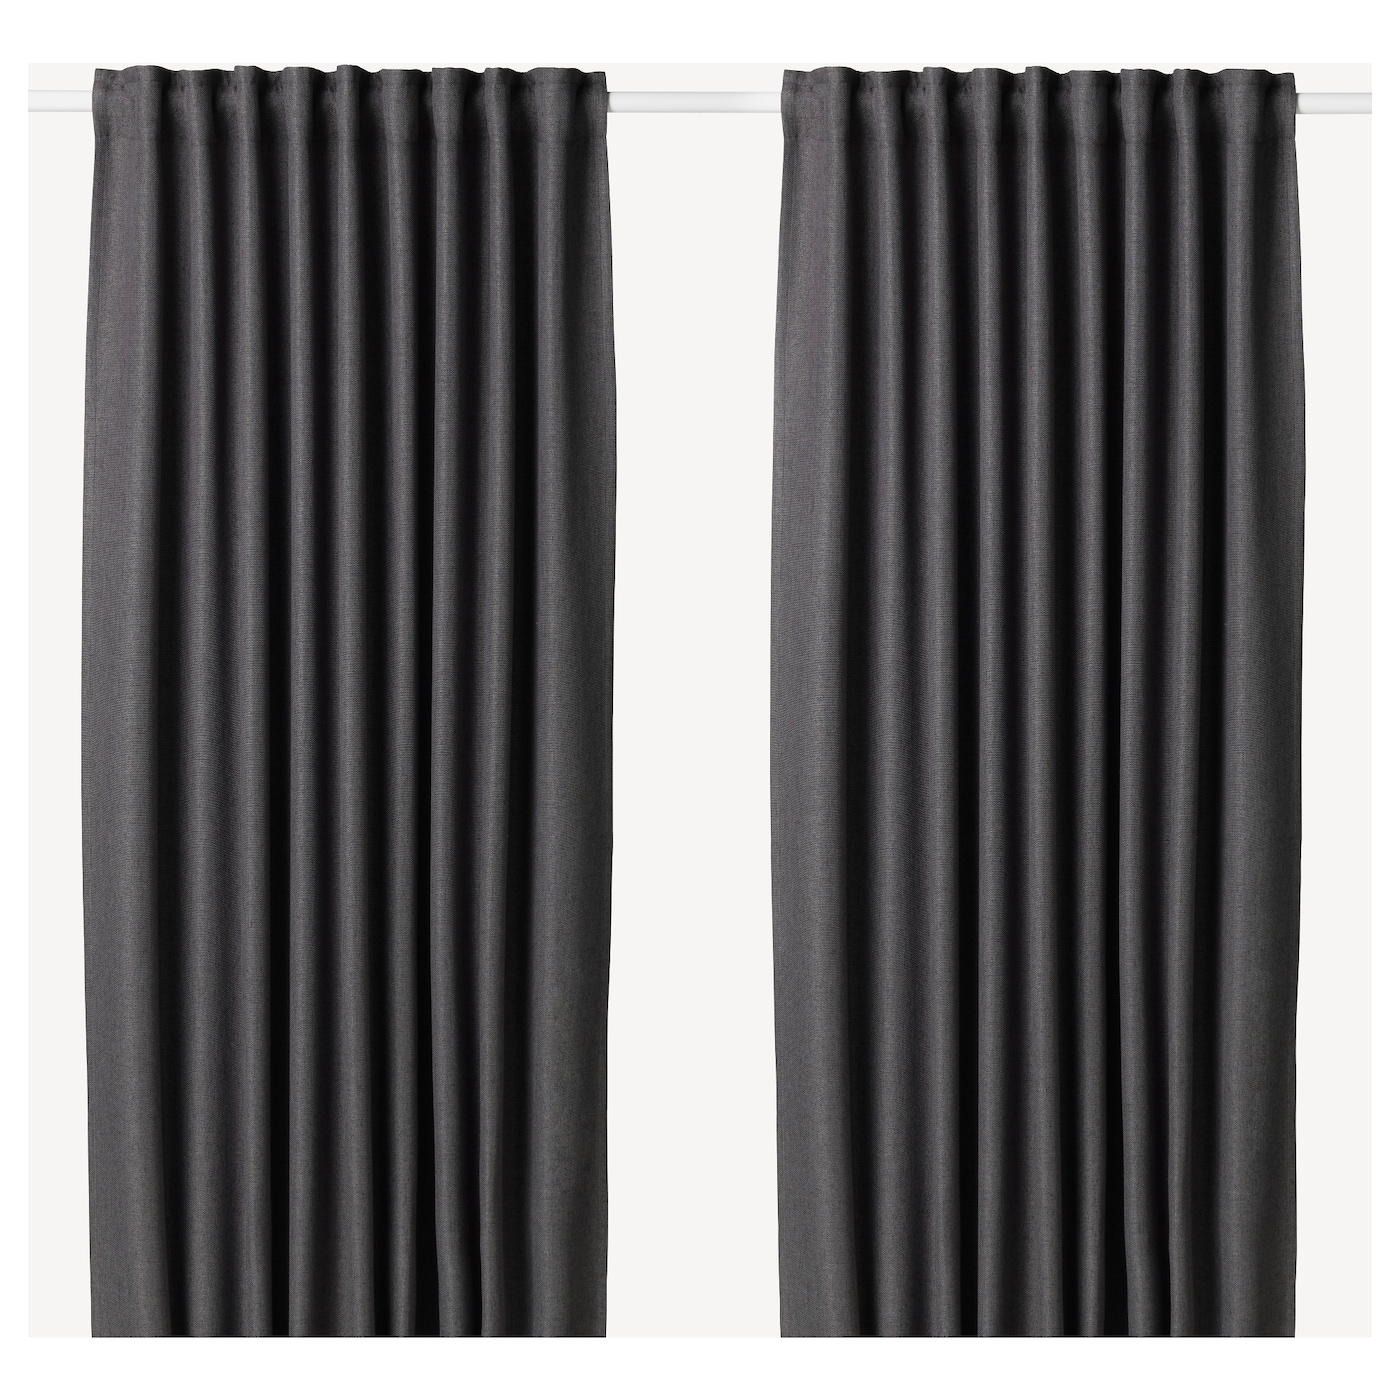 IKEA ANNAKAJSA block-out curtains, 1 pair